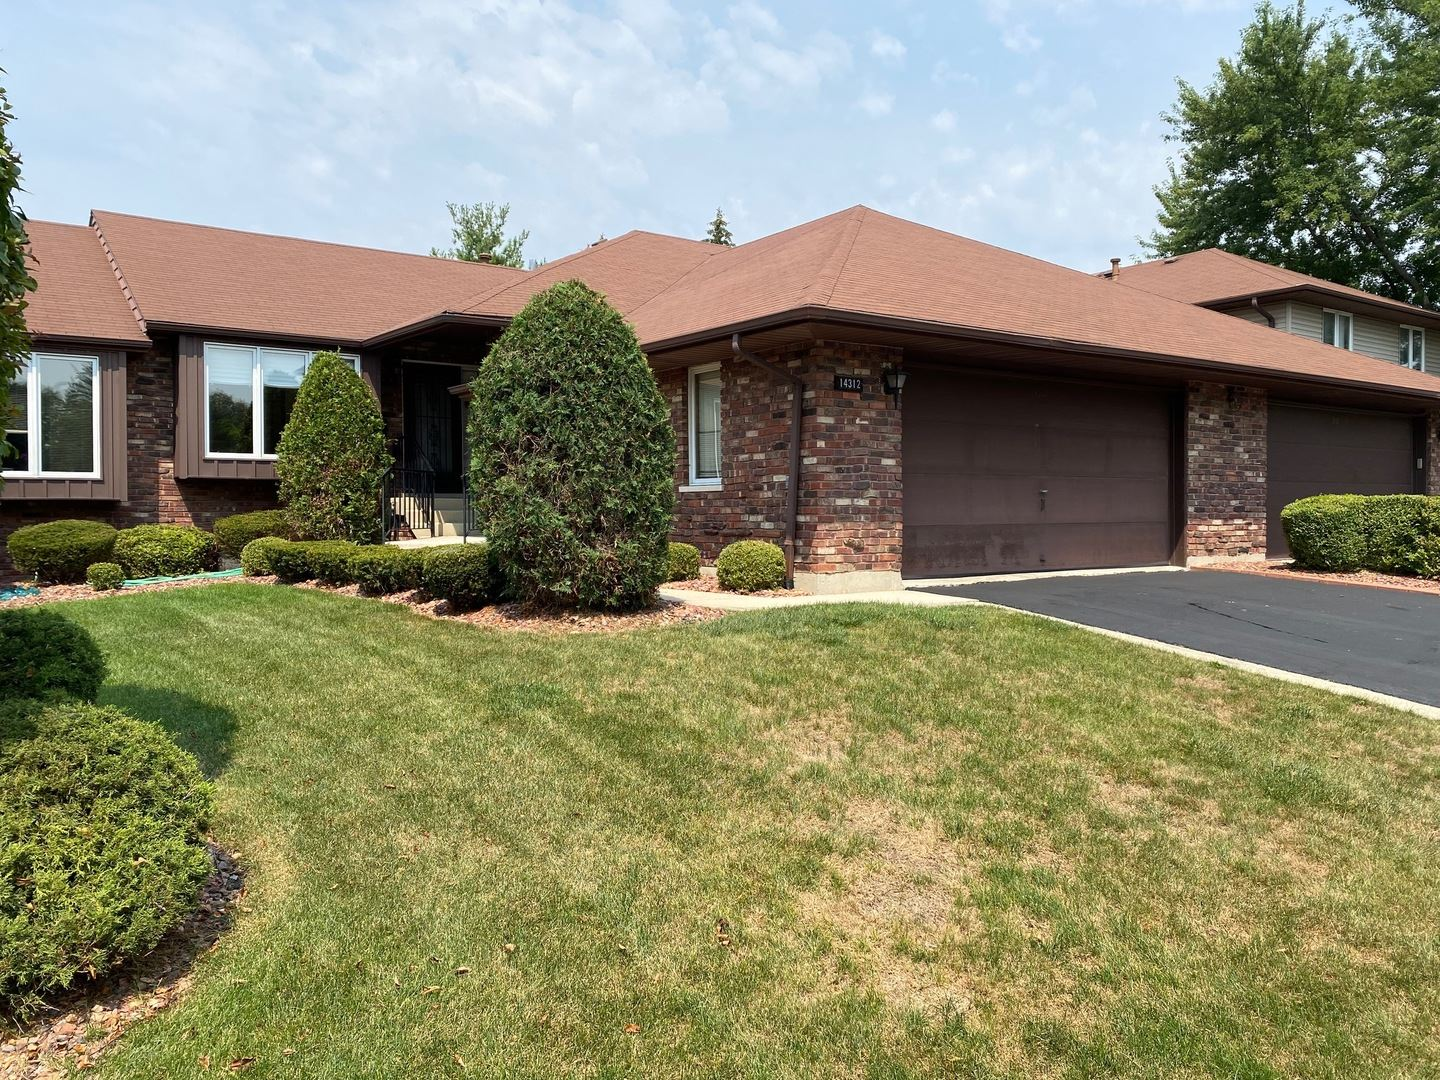 14312 Clearview Court #14312, Orland Park, IL 60462 - #: 11237839